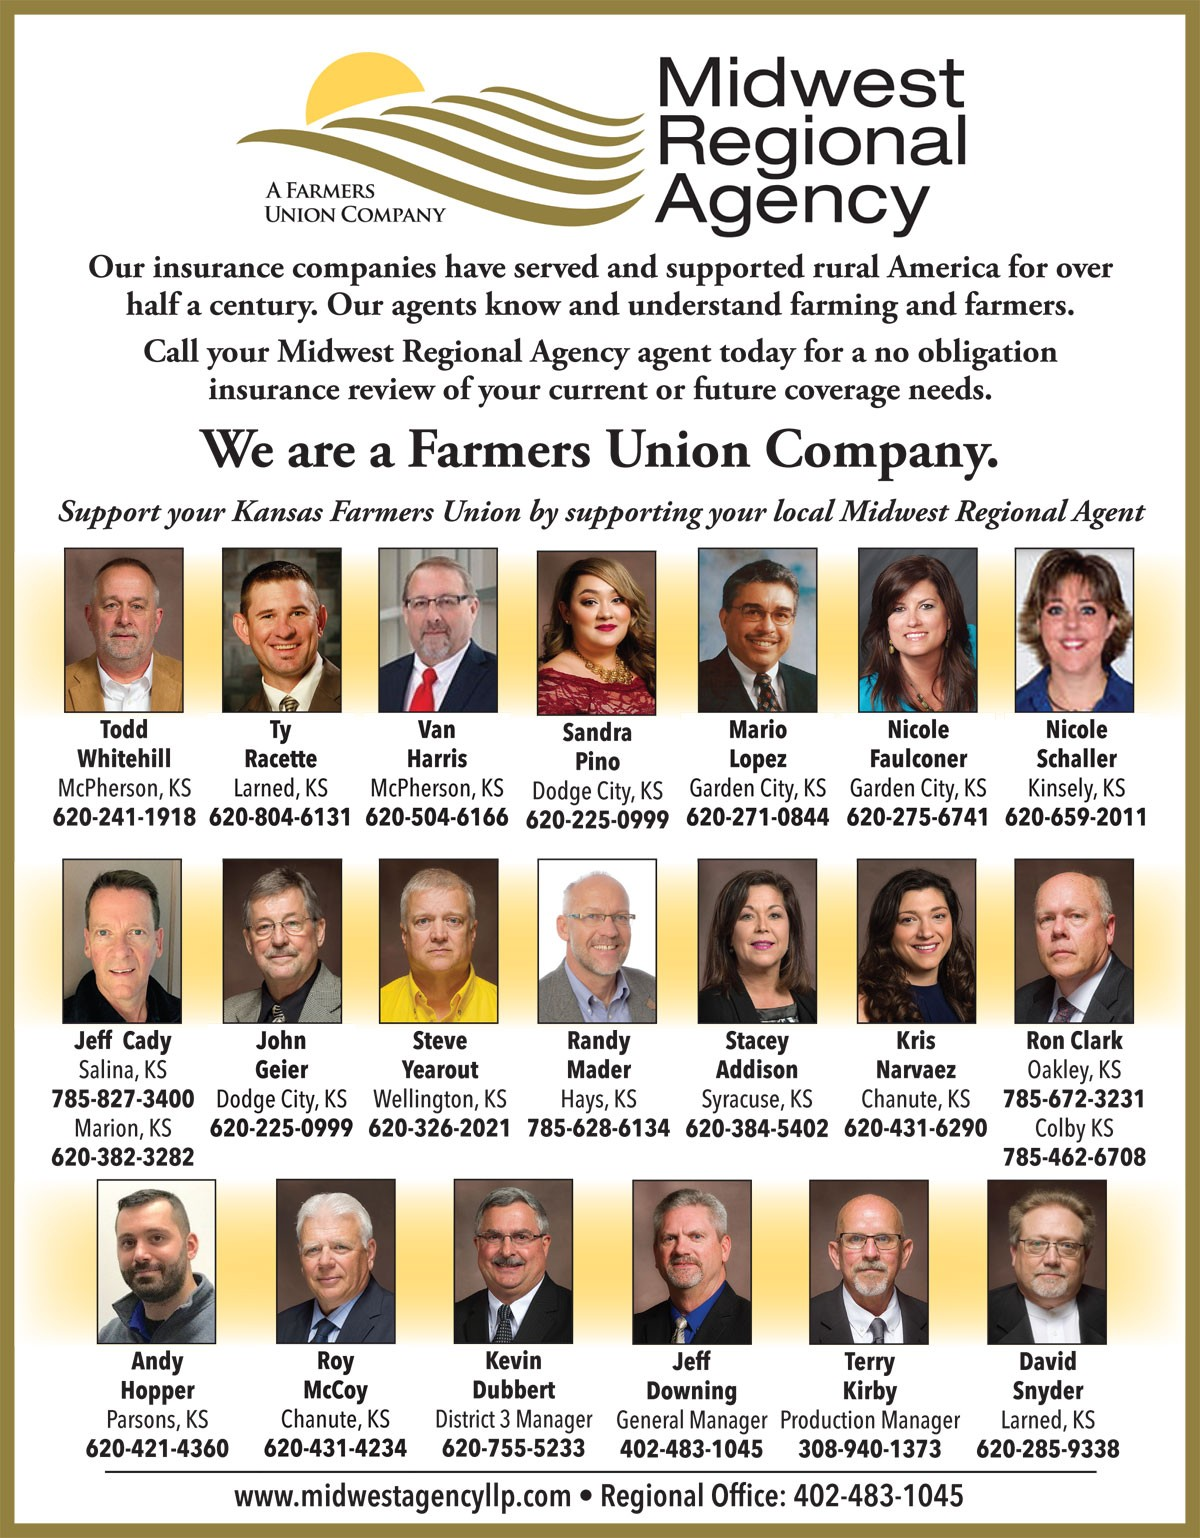 MIDWEST REGIONAL AGENCY AGENTS PAGE 1